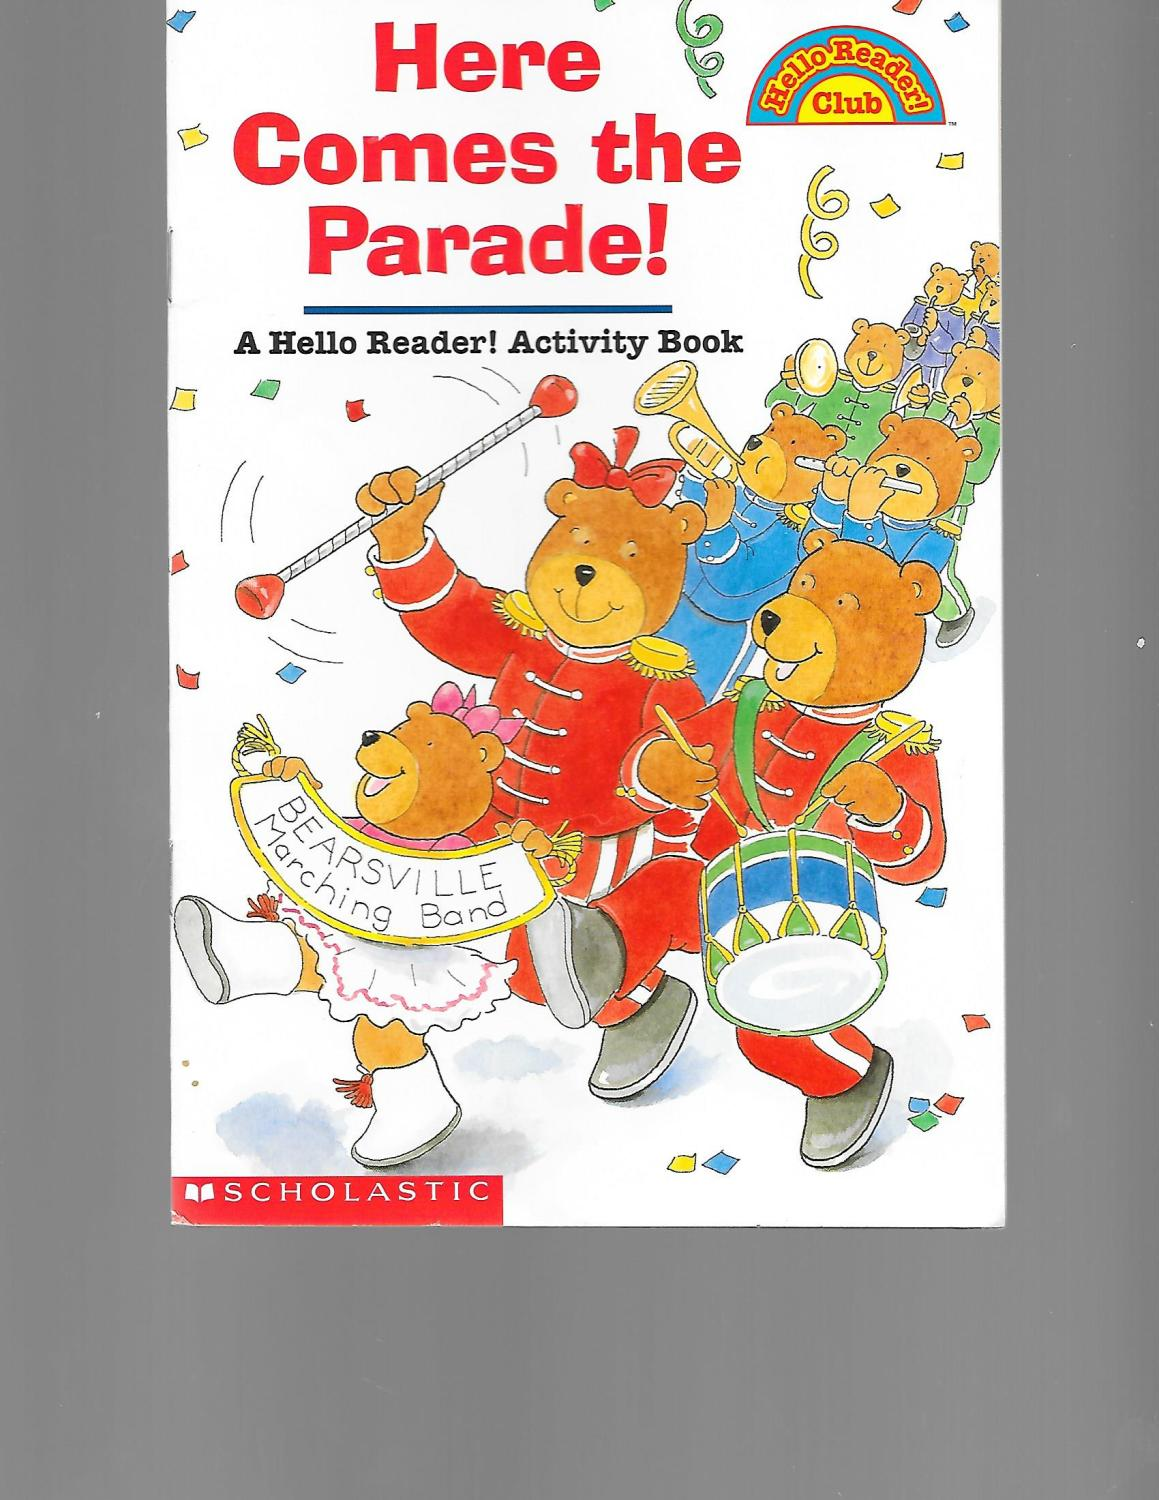 Here Comes the Parade! a Hello Reader! Activity Book